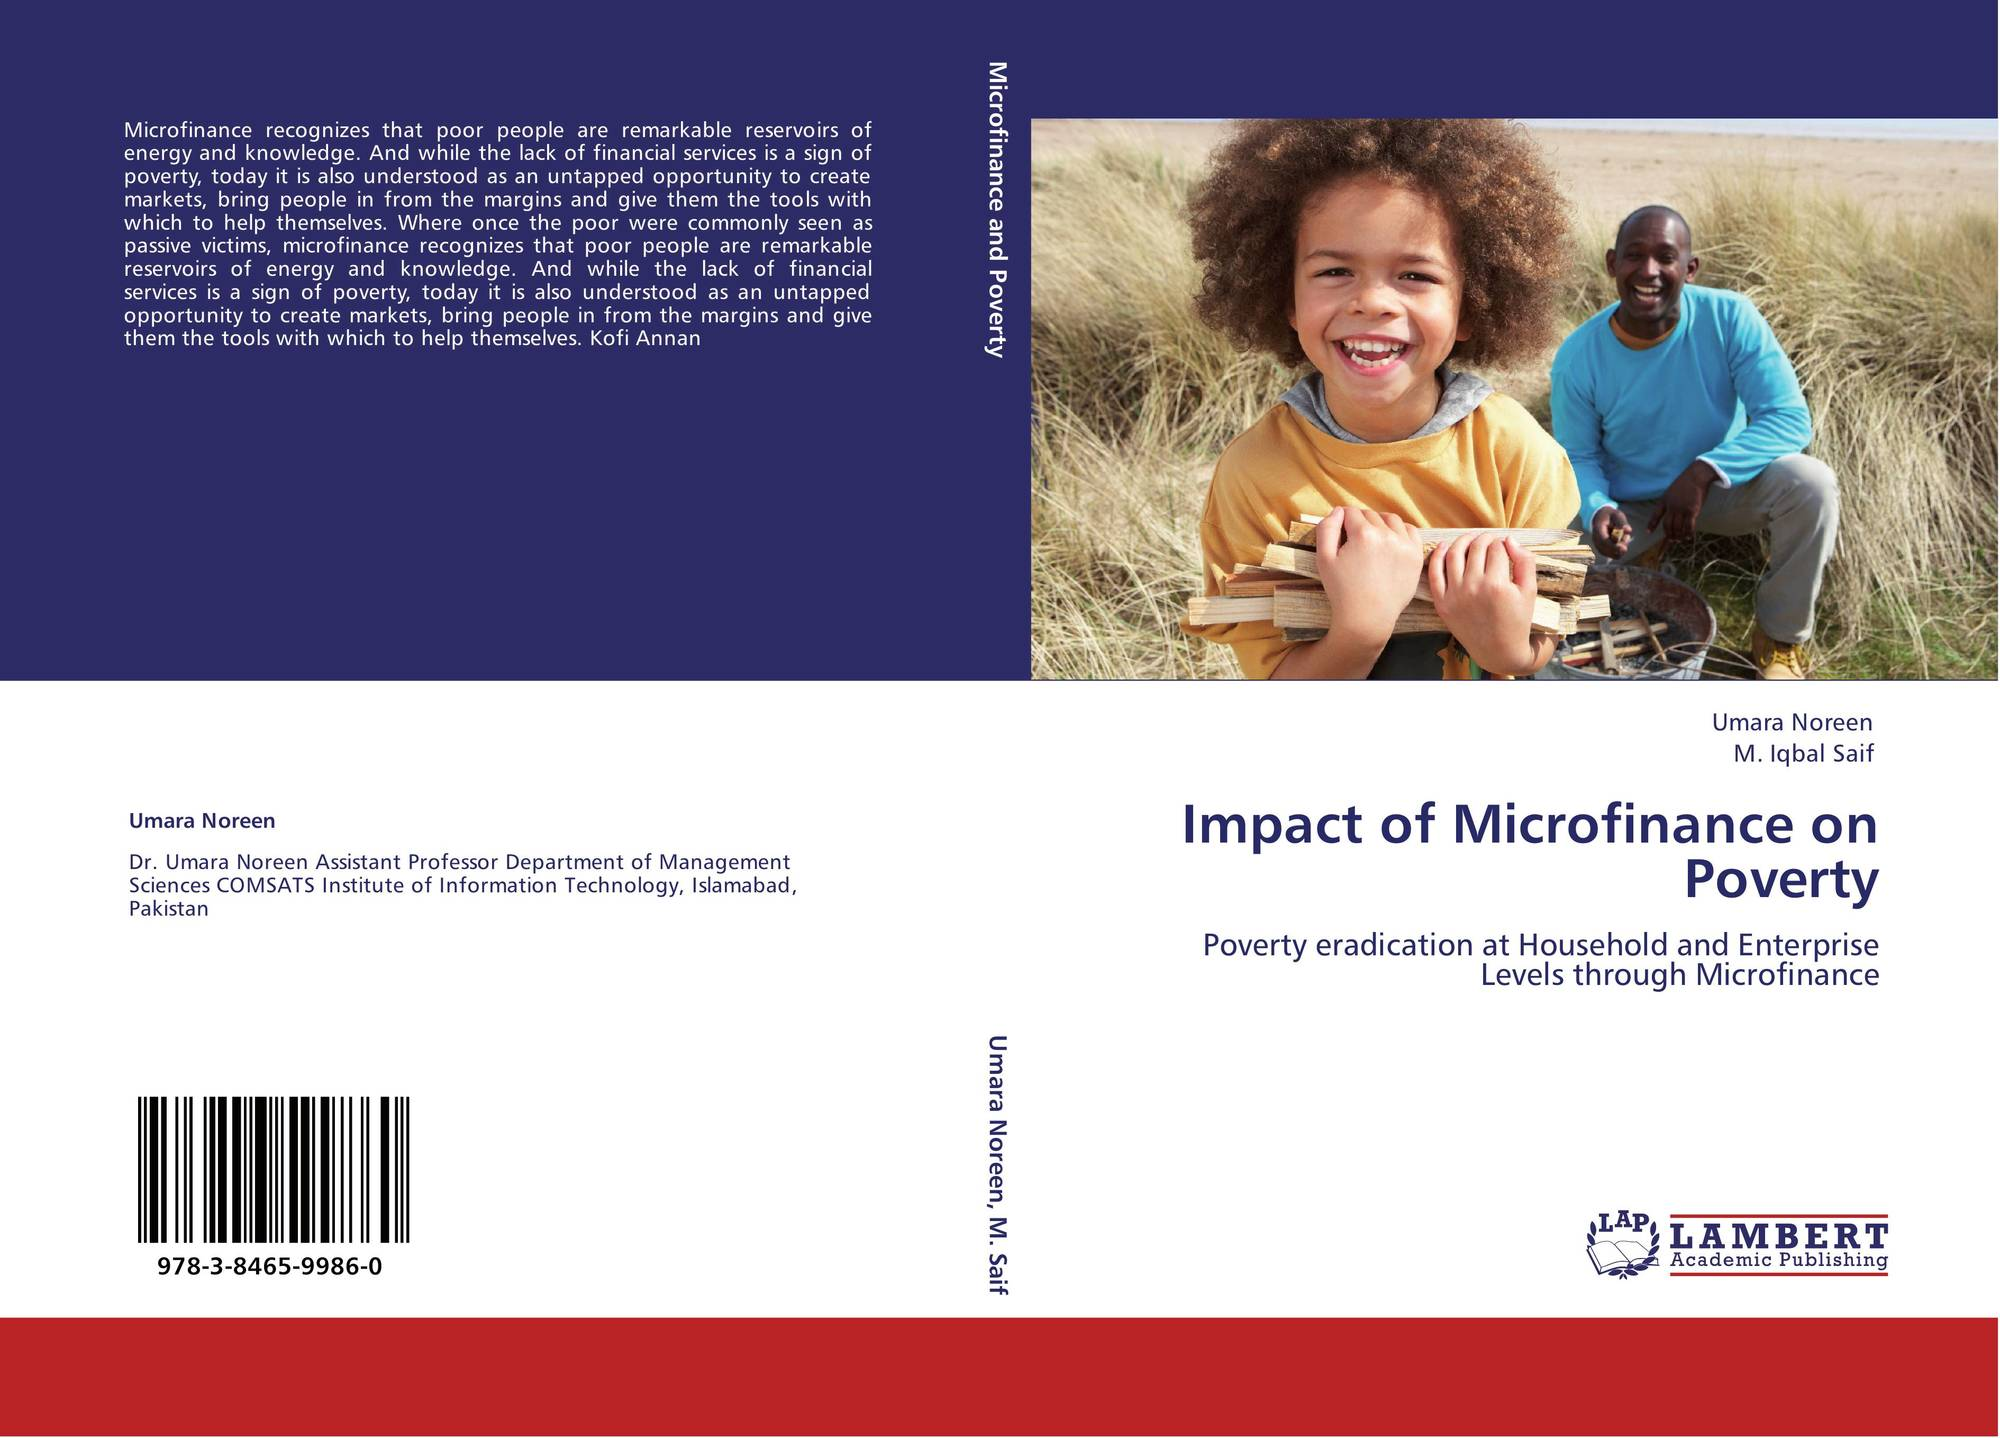 thesis on microfinance in pakistan